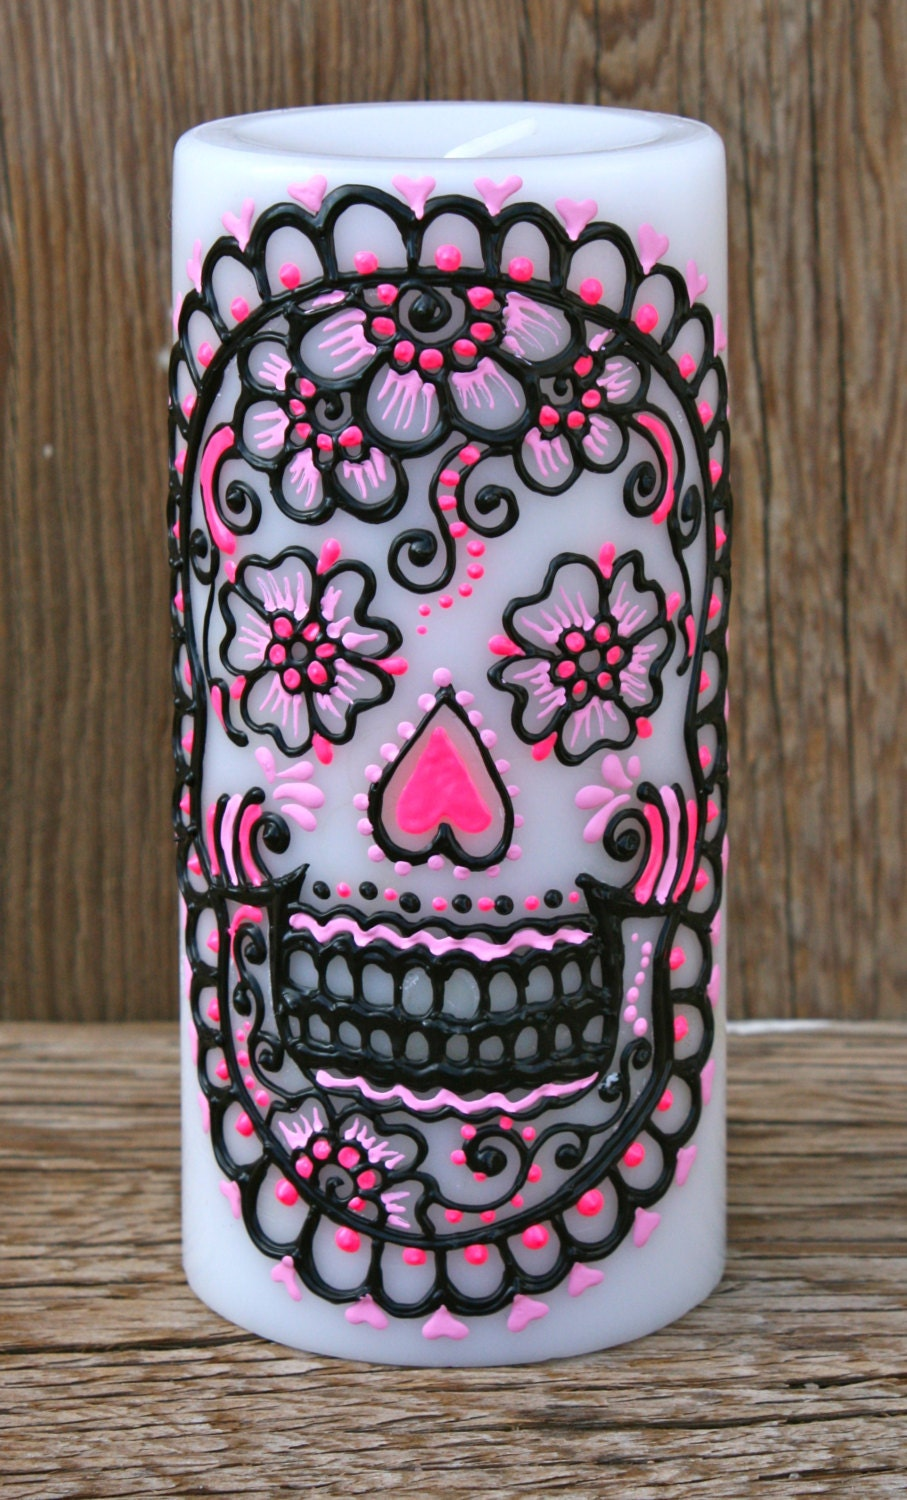 Painted Sugar Skull Pillar Candle White Pillar Candle Day of